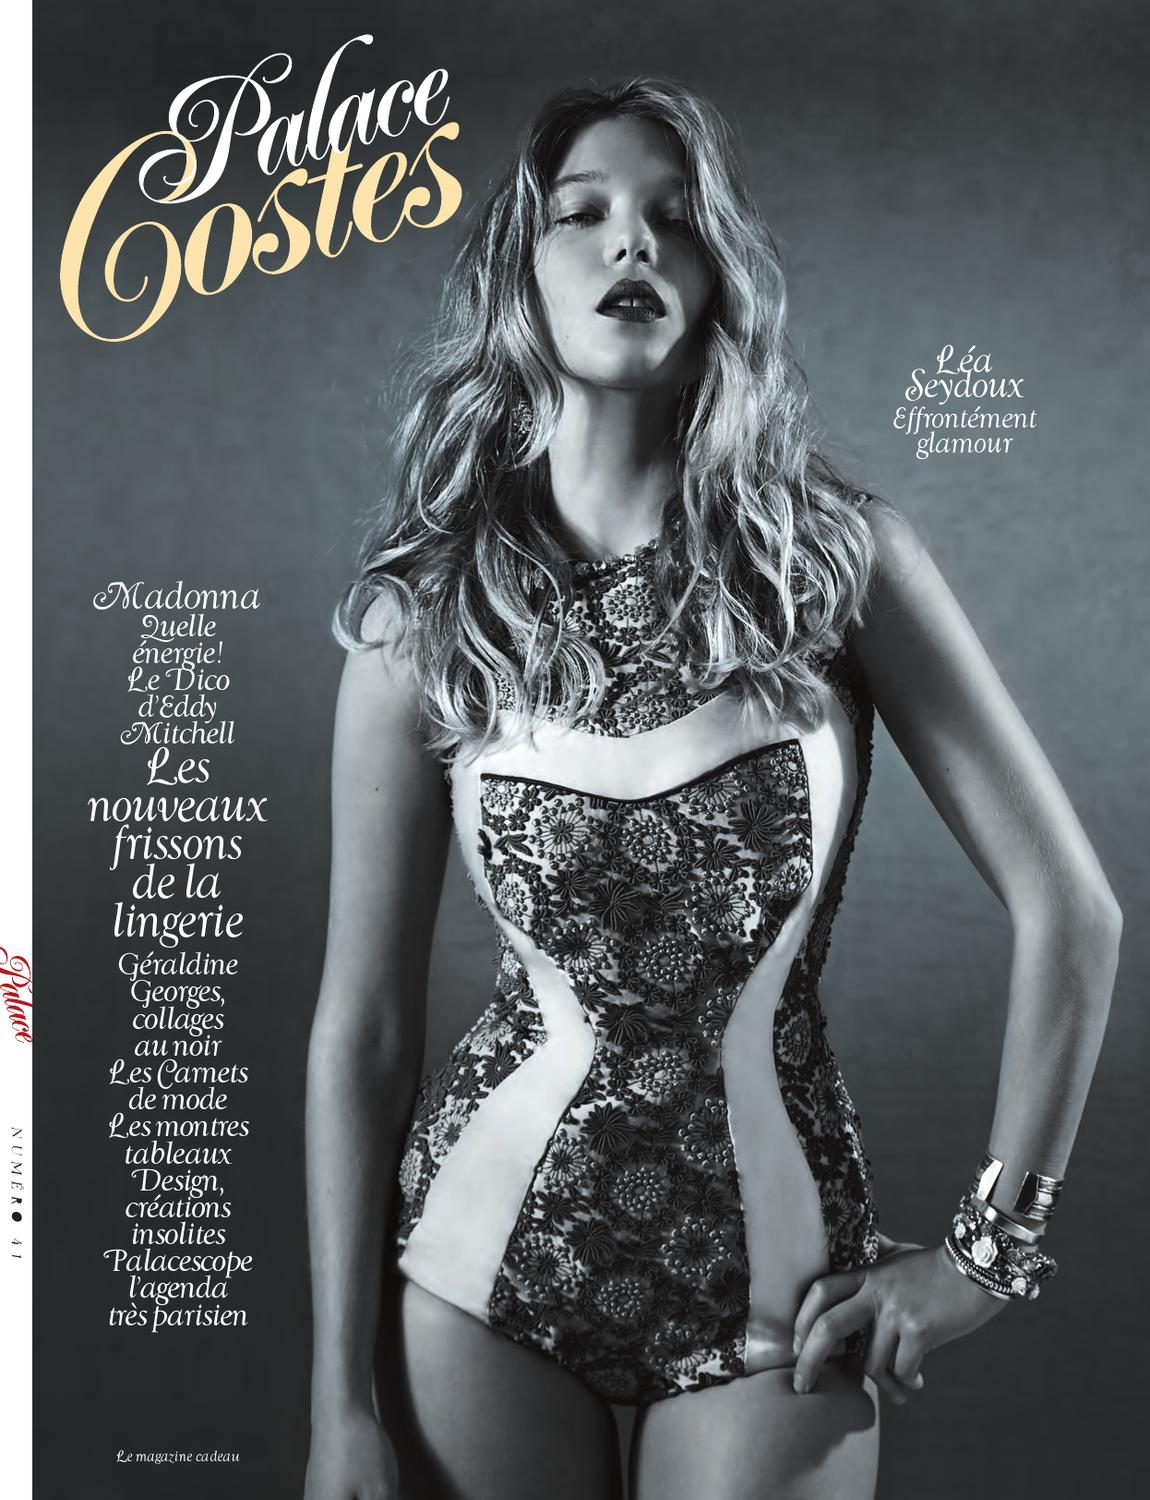 Palace Costes 41 by Palace Costes - issuu 9b64a84ef8b